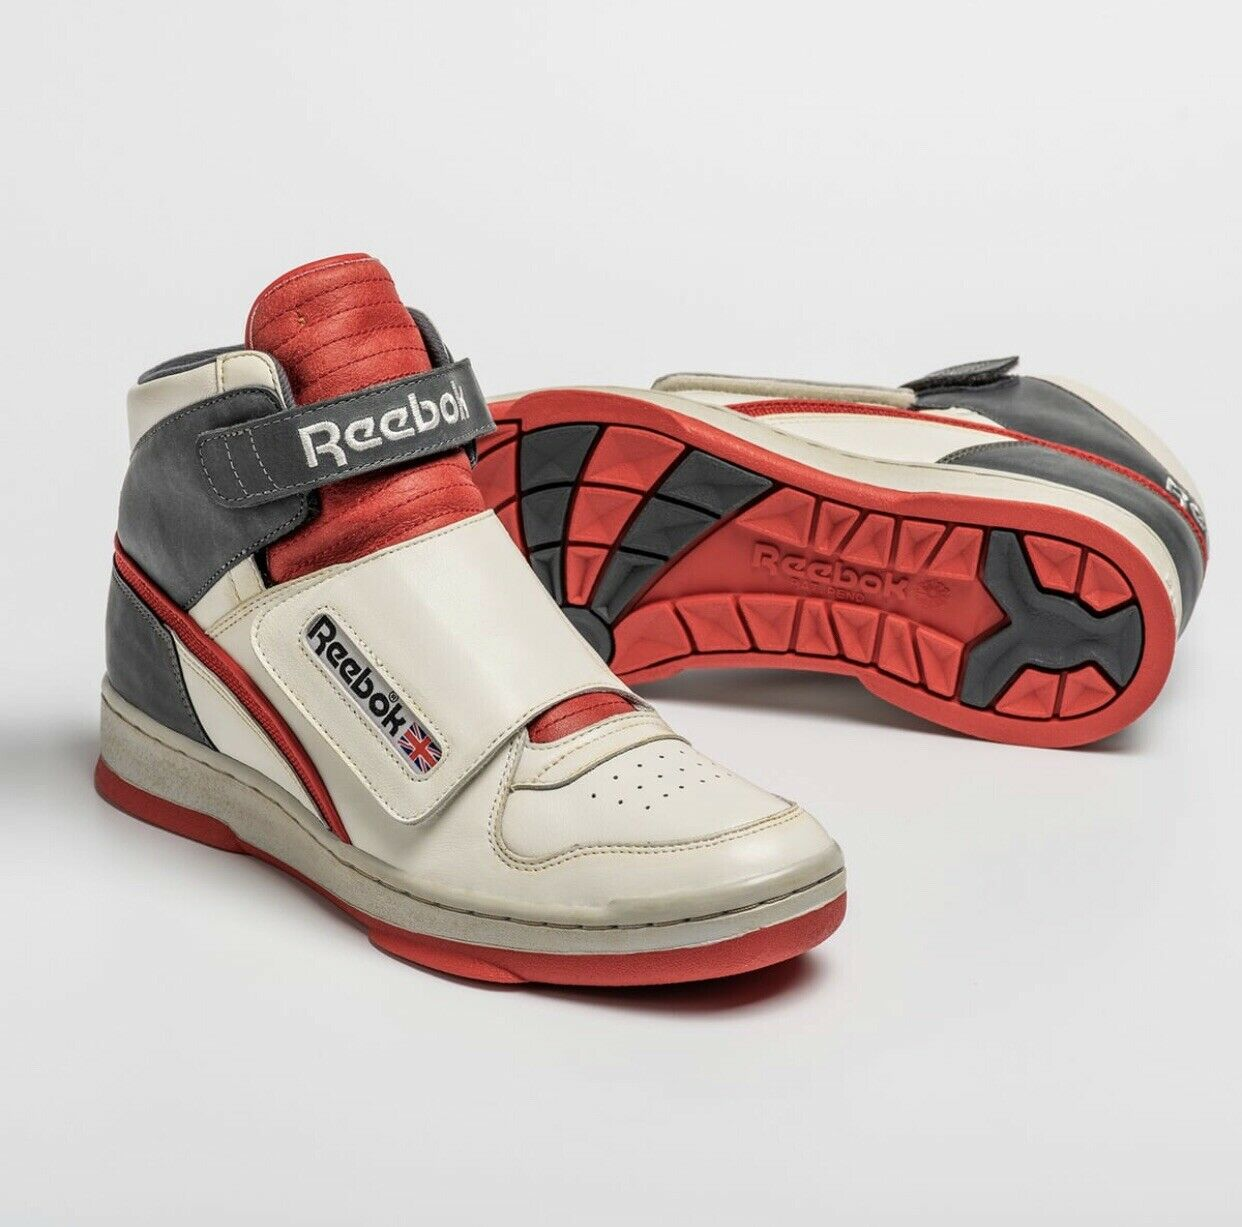 Reebok Alien Stomper Bishop 40th Anniversary